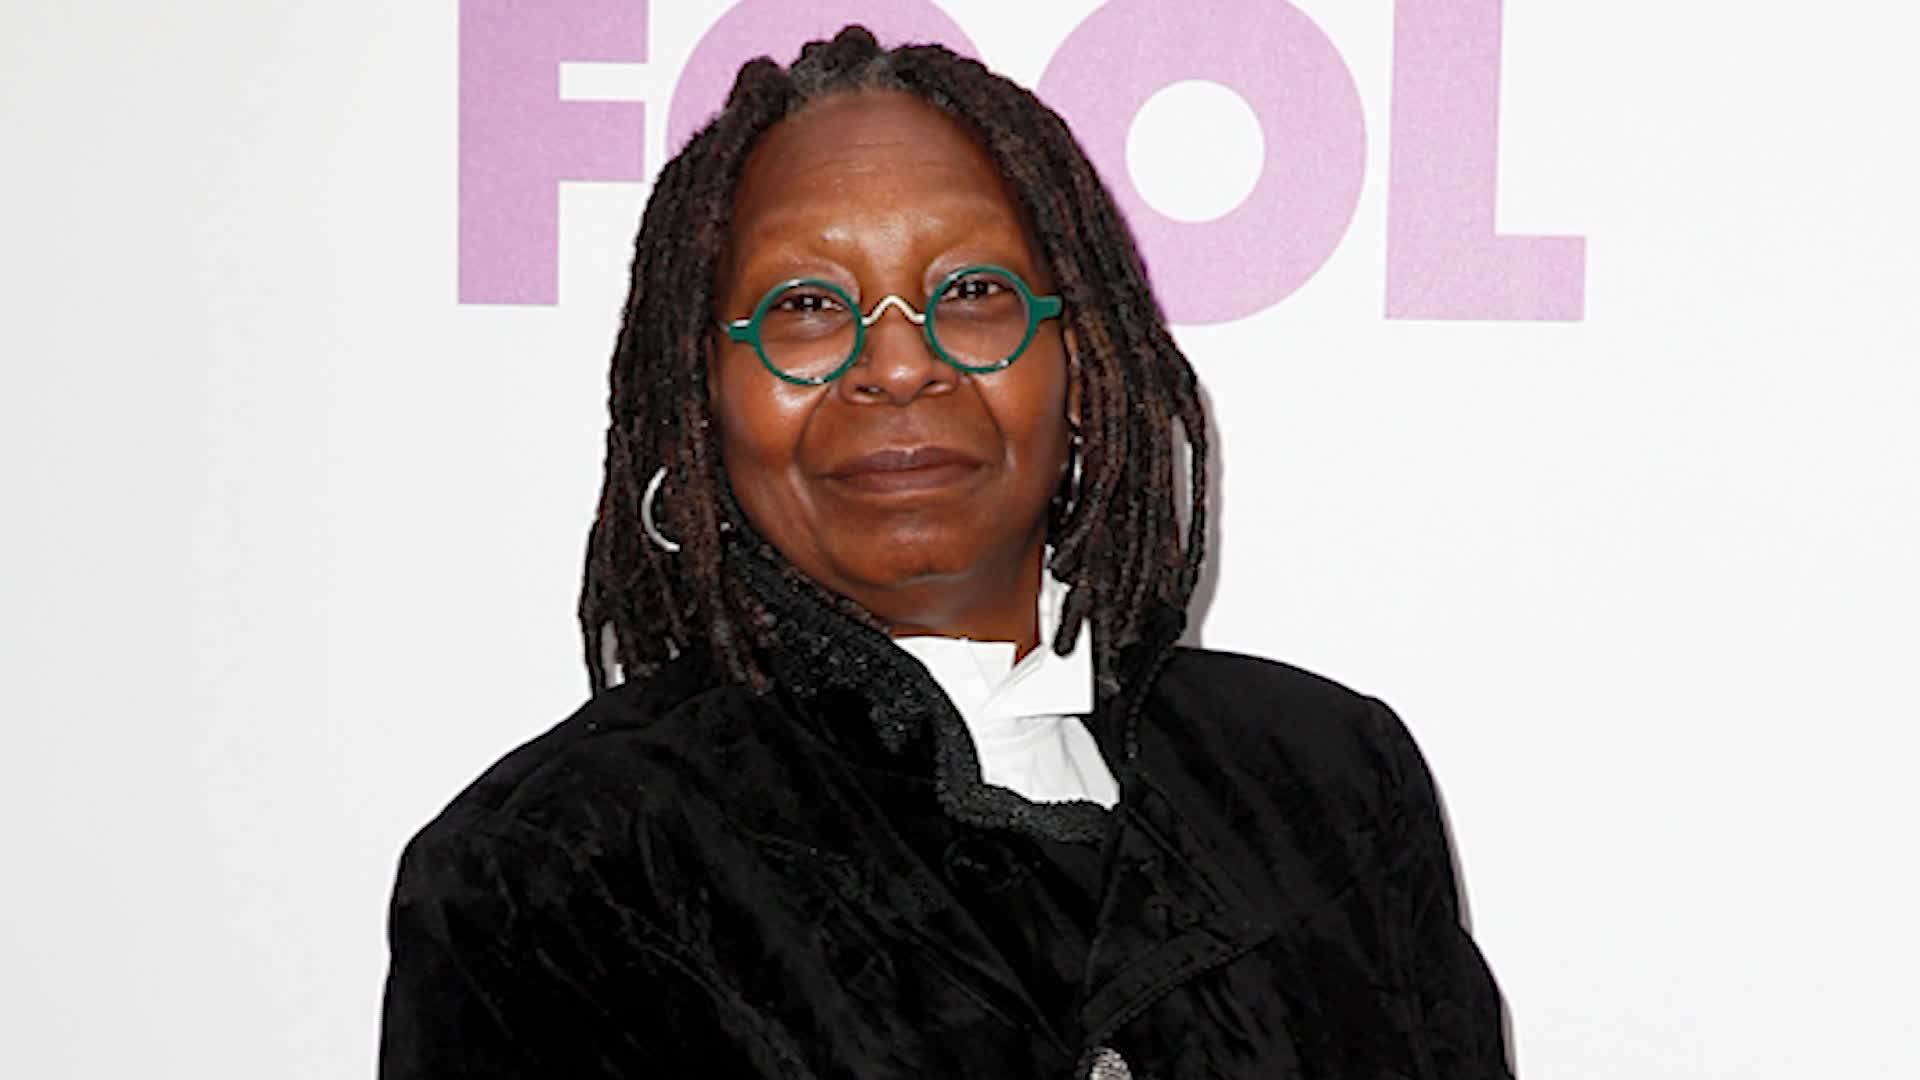 Whoopi Goldberg pitches herself as Oscars host - CNN Video